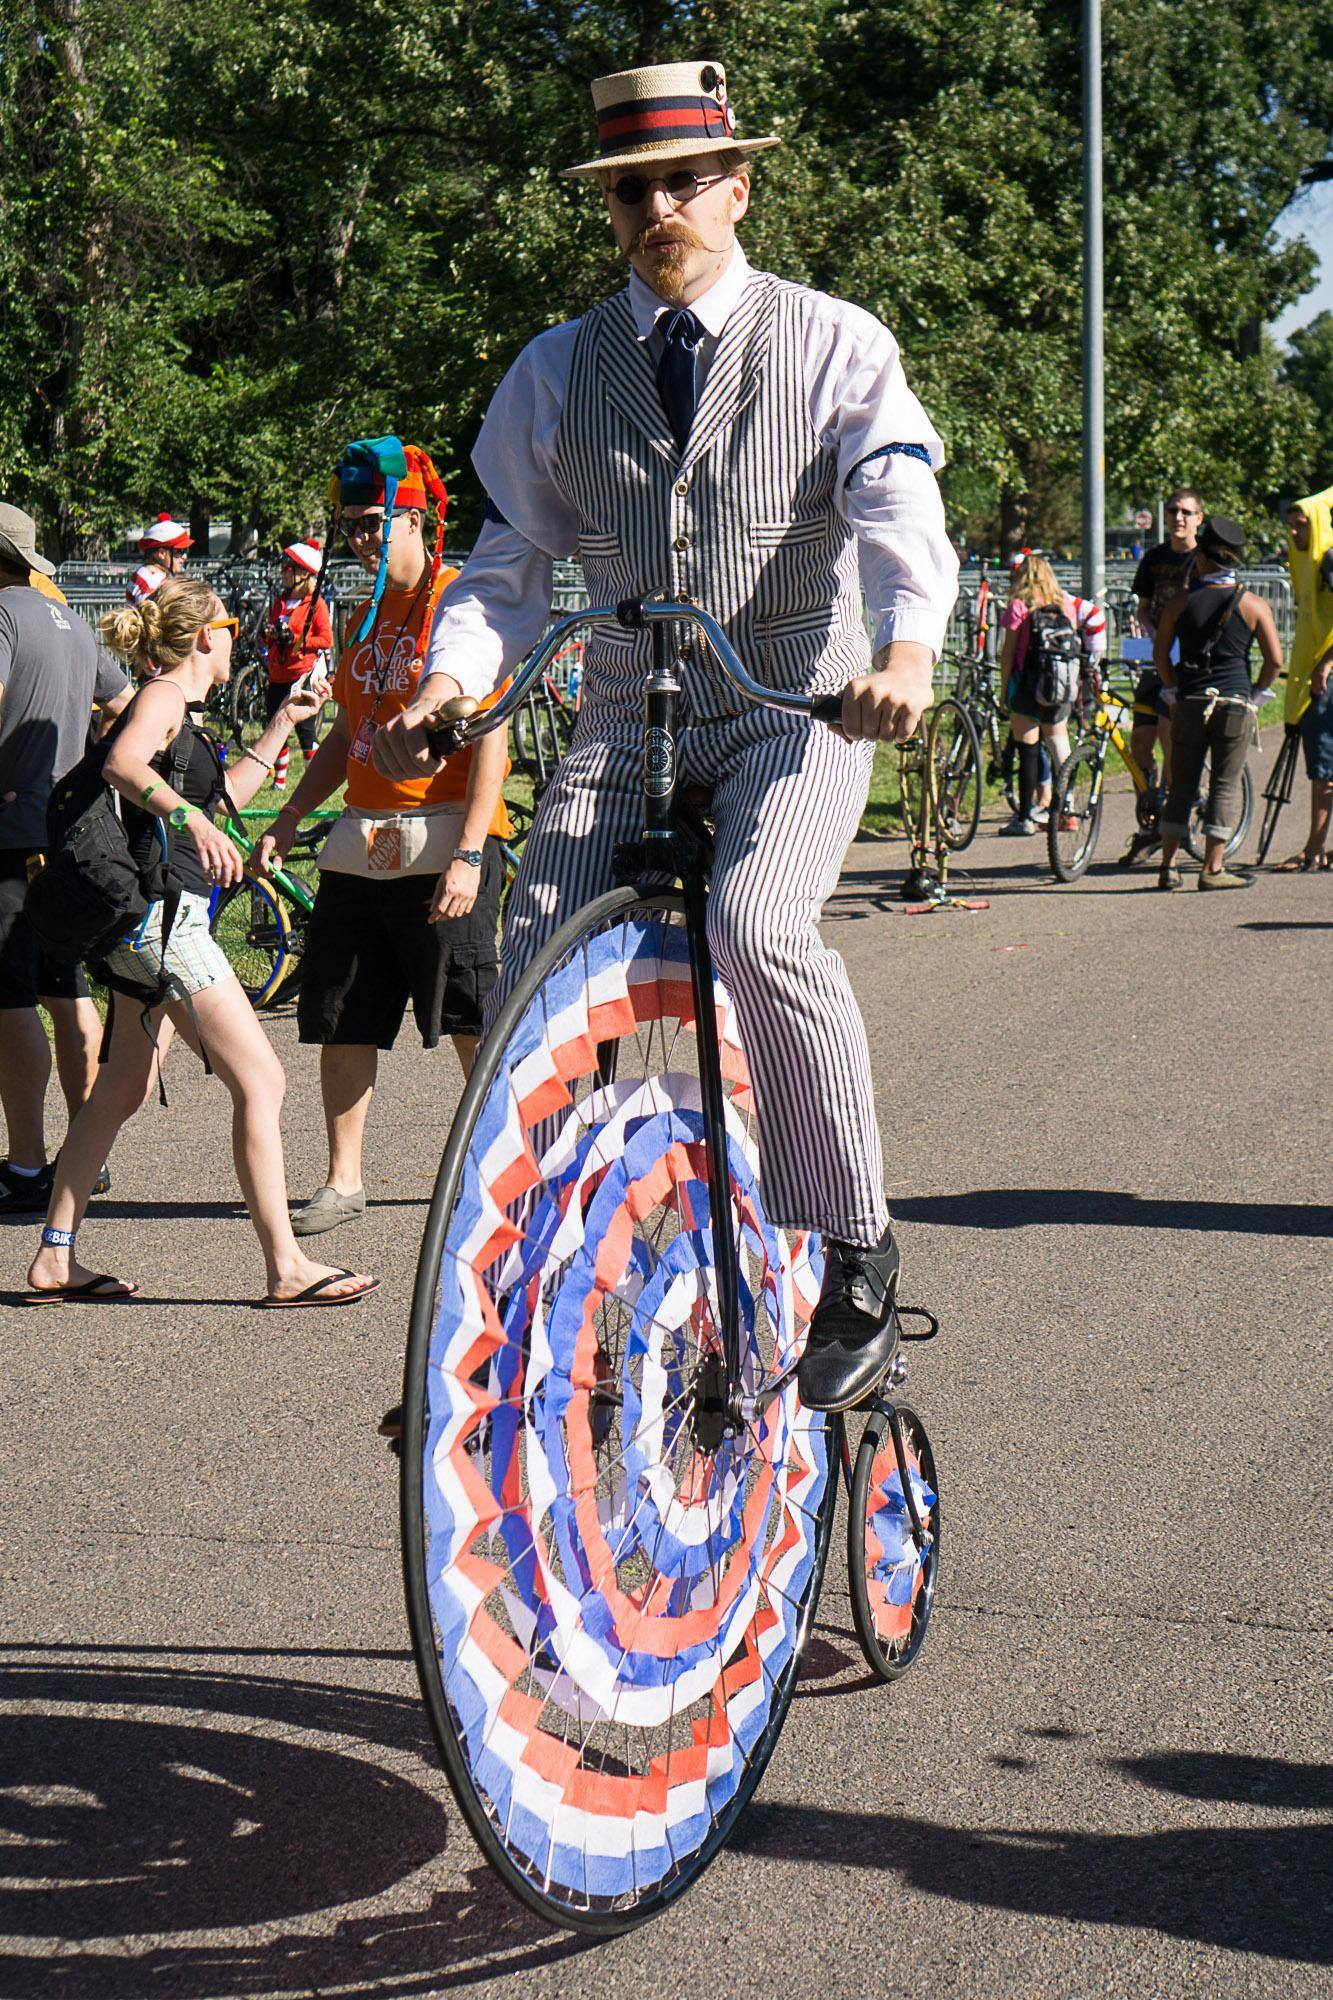 Penny-Farthing bicycle